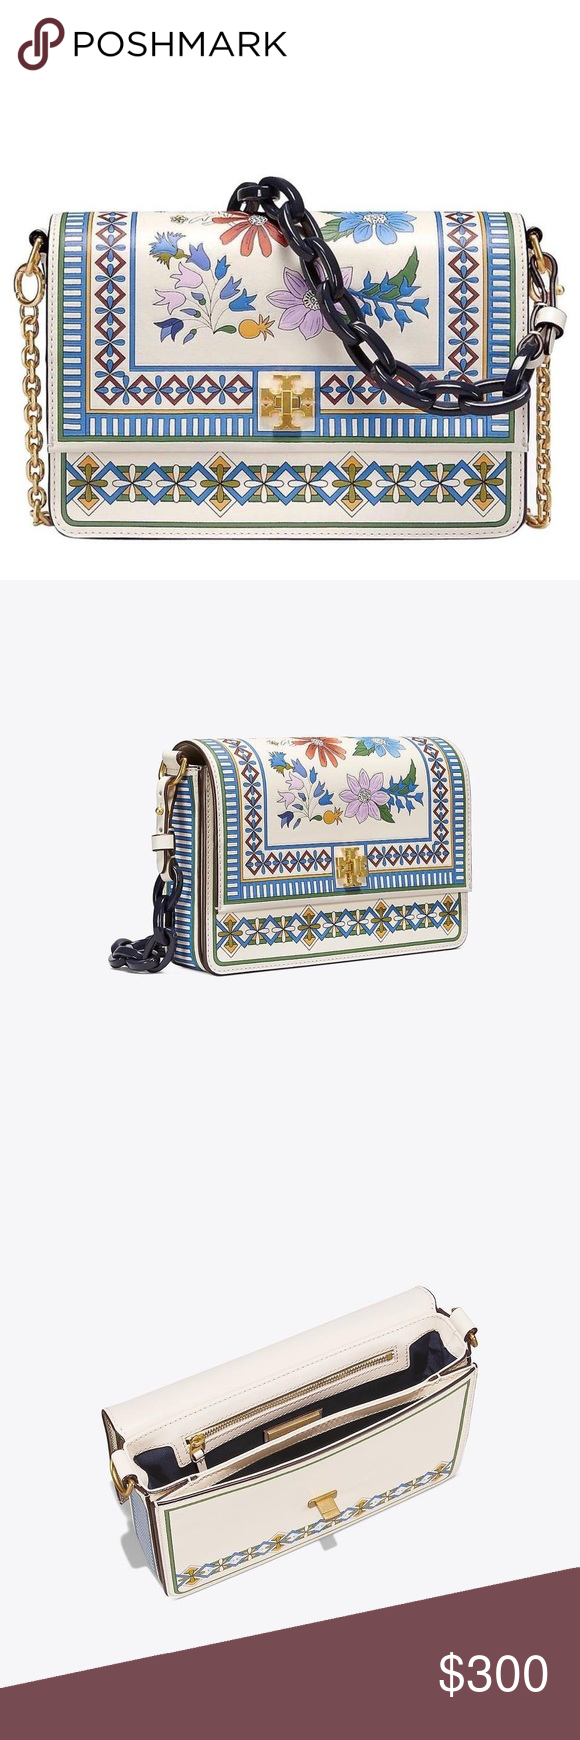 0c7f2c8612f Tory Burch Kira Floral Ivory Meadow Folly Bag Made of tooled